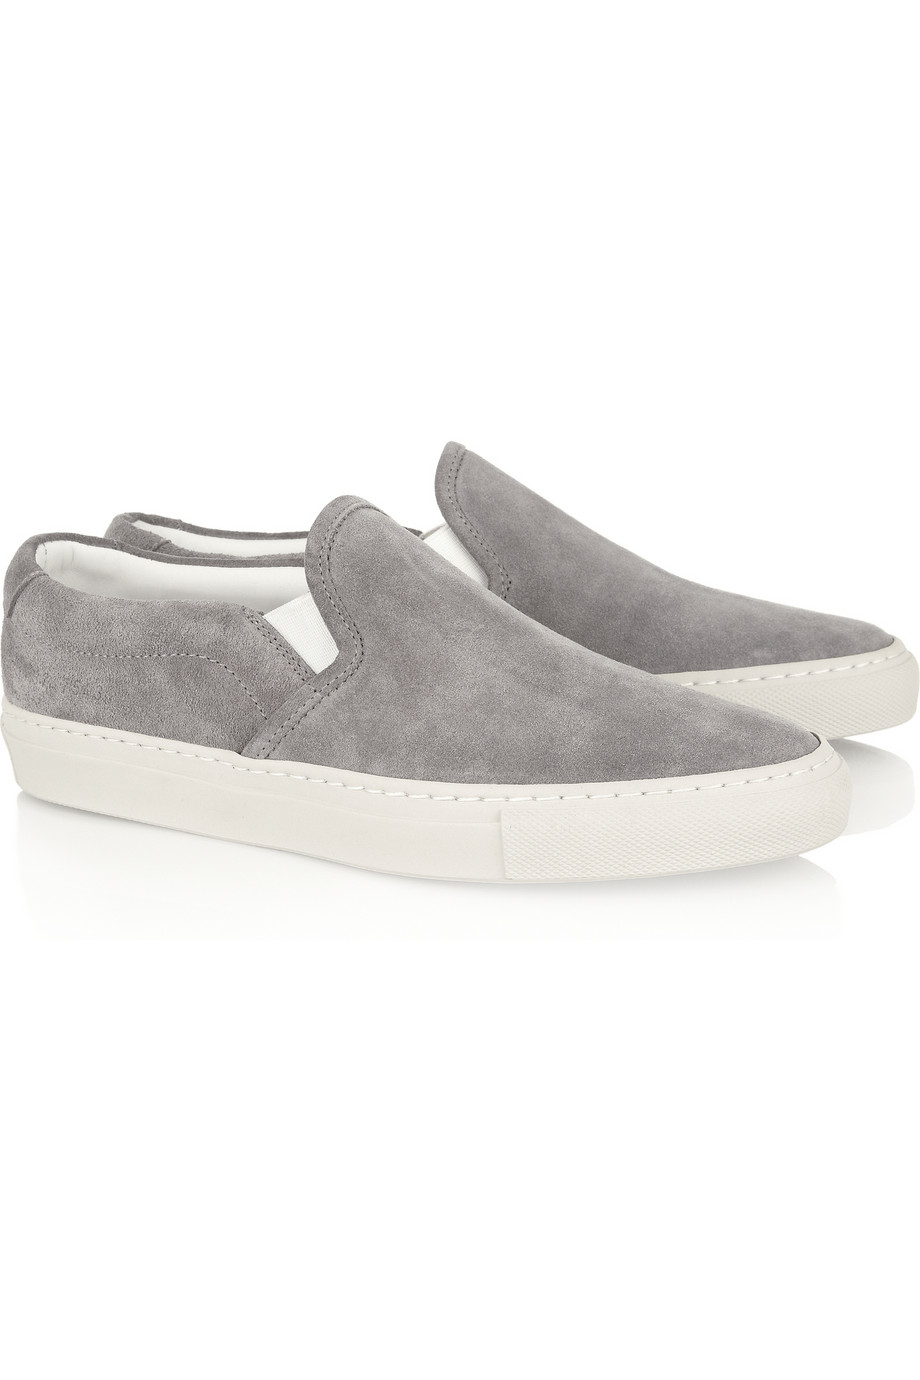 Common Projects Suede Sneakers in Gray - Lyst e9b6d0ccc